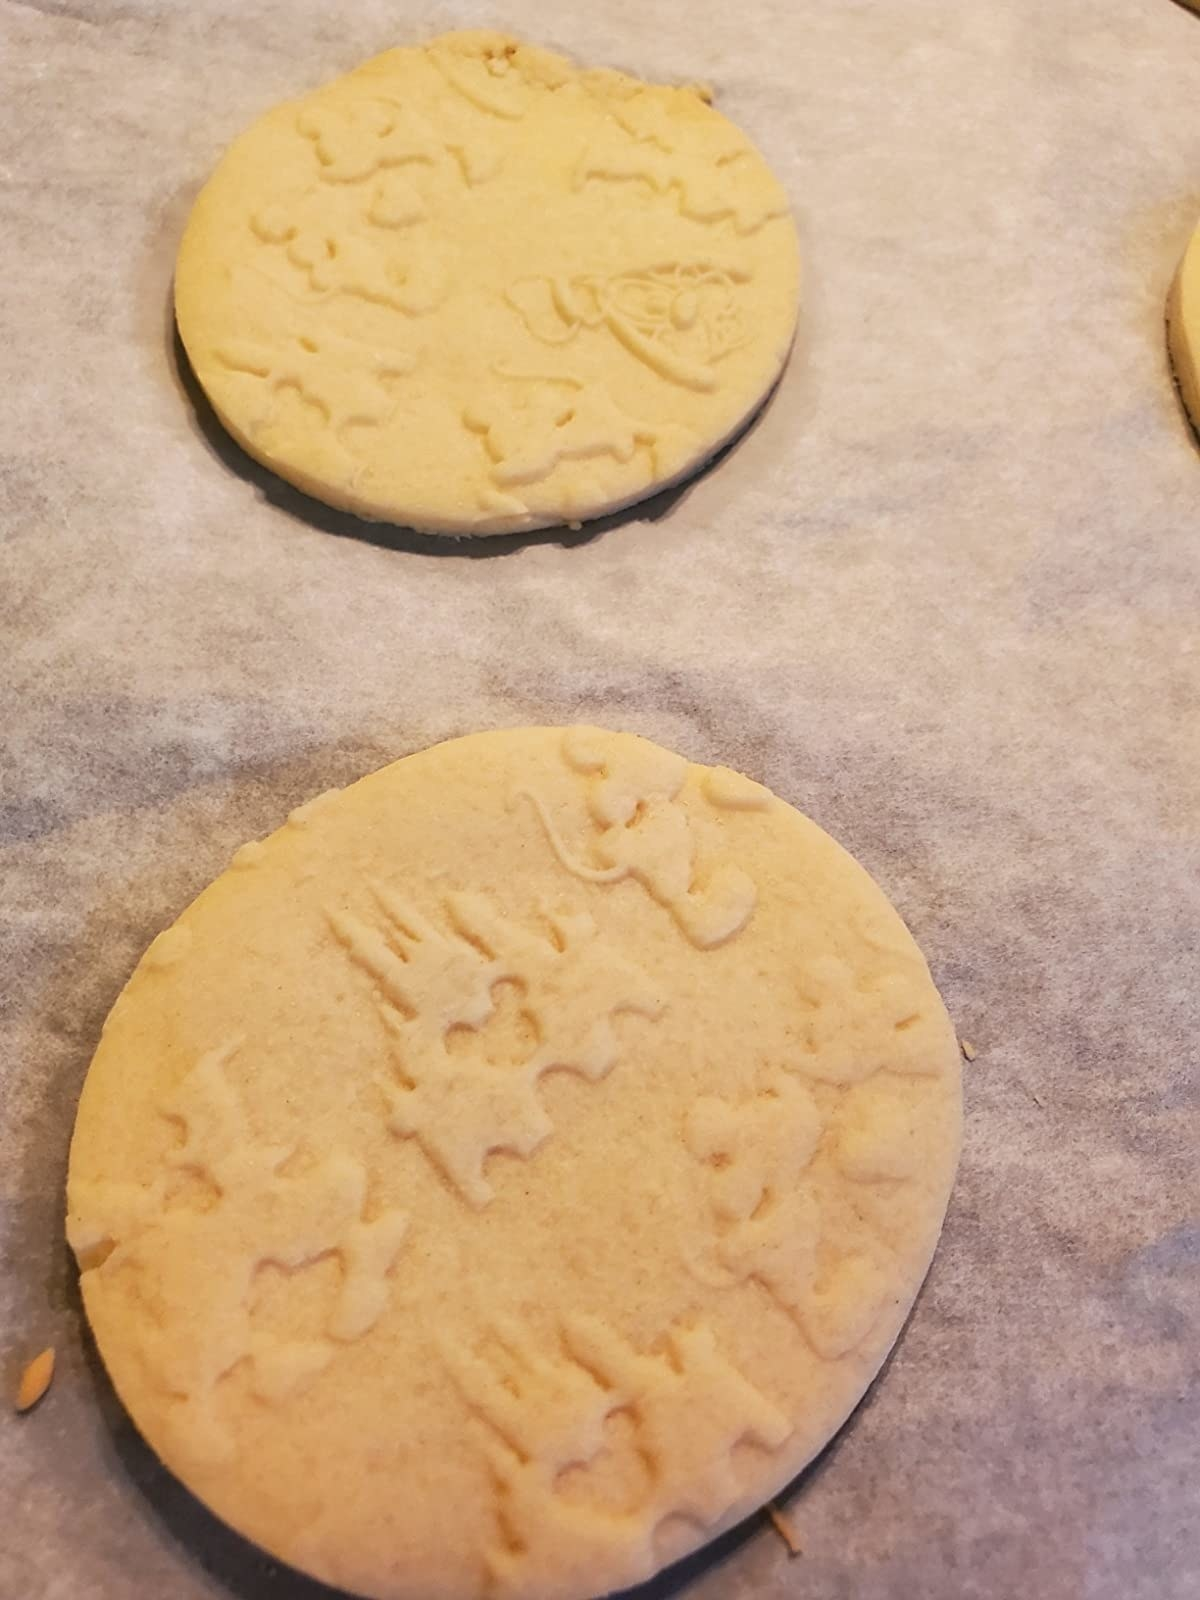 Reviewer photo of dough with the Disney castle embossed on it